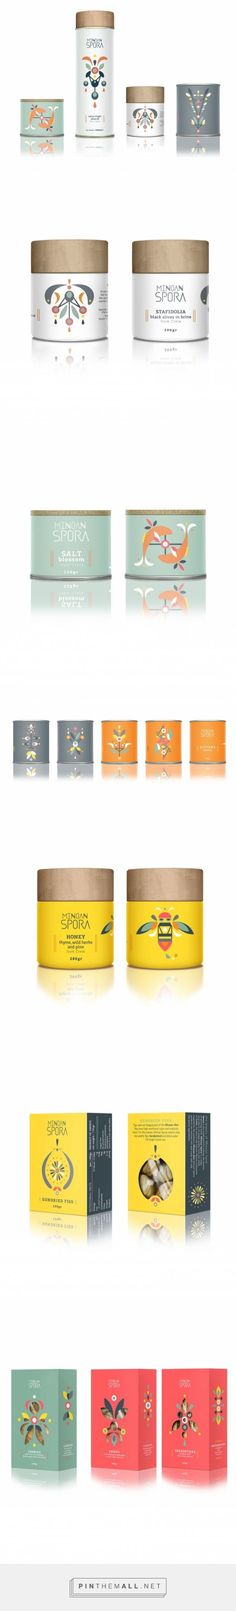 """Packaging Design Minoan Spora - """"Minoan Spora is a range of products from the island of Crete, including olive oil, herbs and infusions, honey, olives, rusks and cookies. / designed by lazy snail , Eleni Pavlaki"""